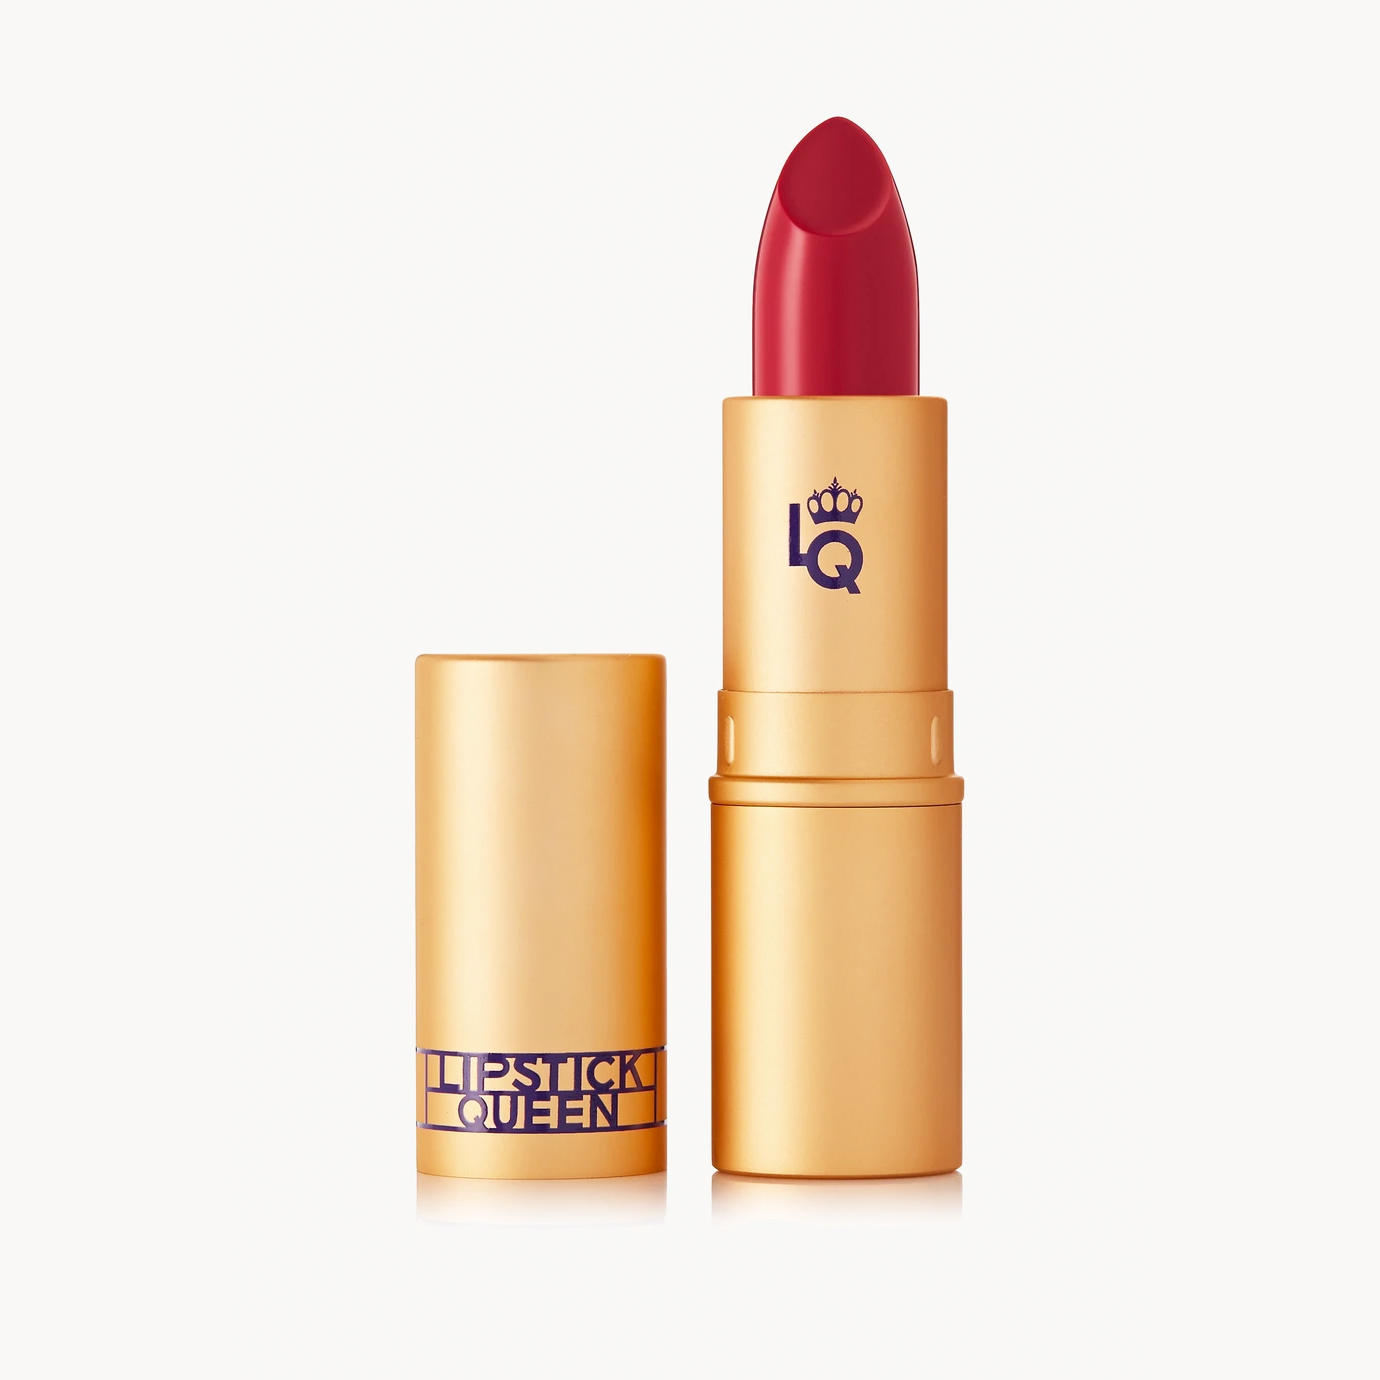 Lipstick Queen Saint Lipstick Bright Berry